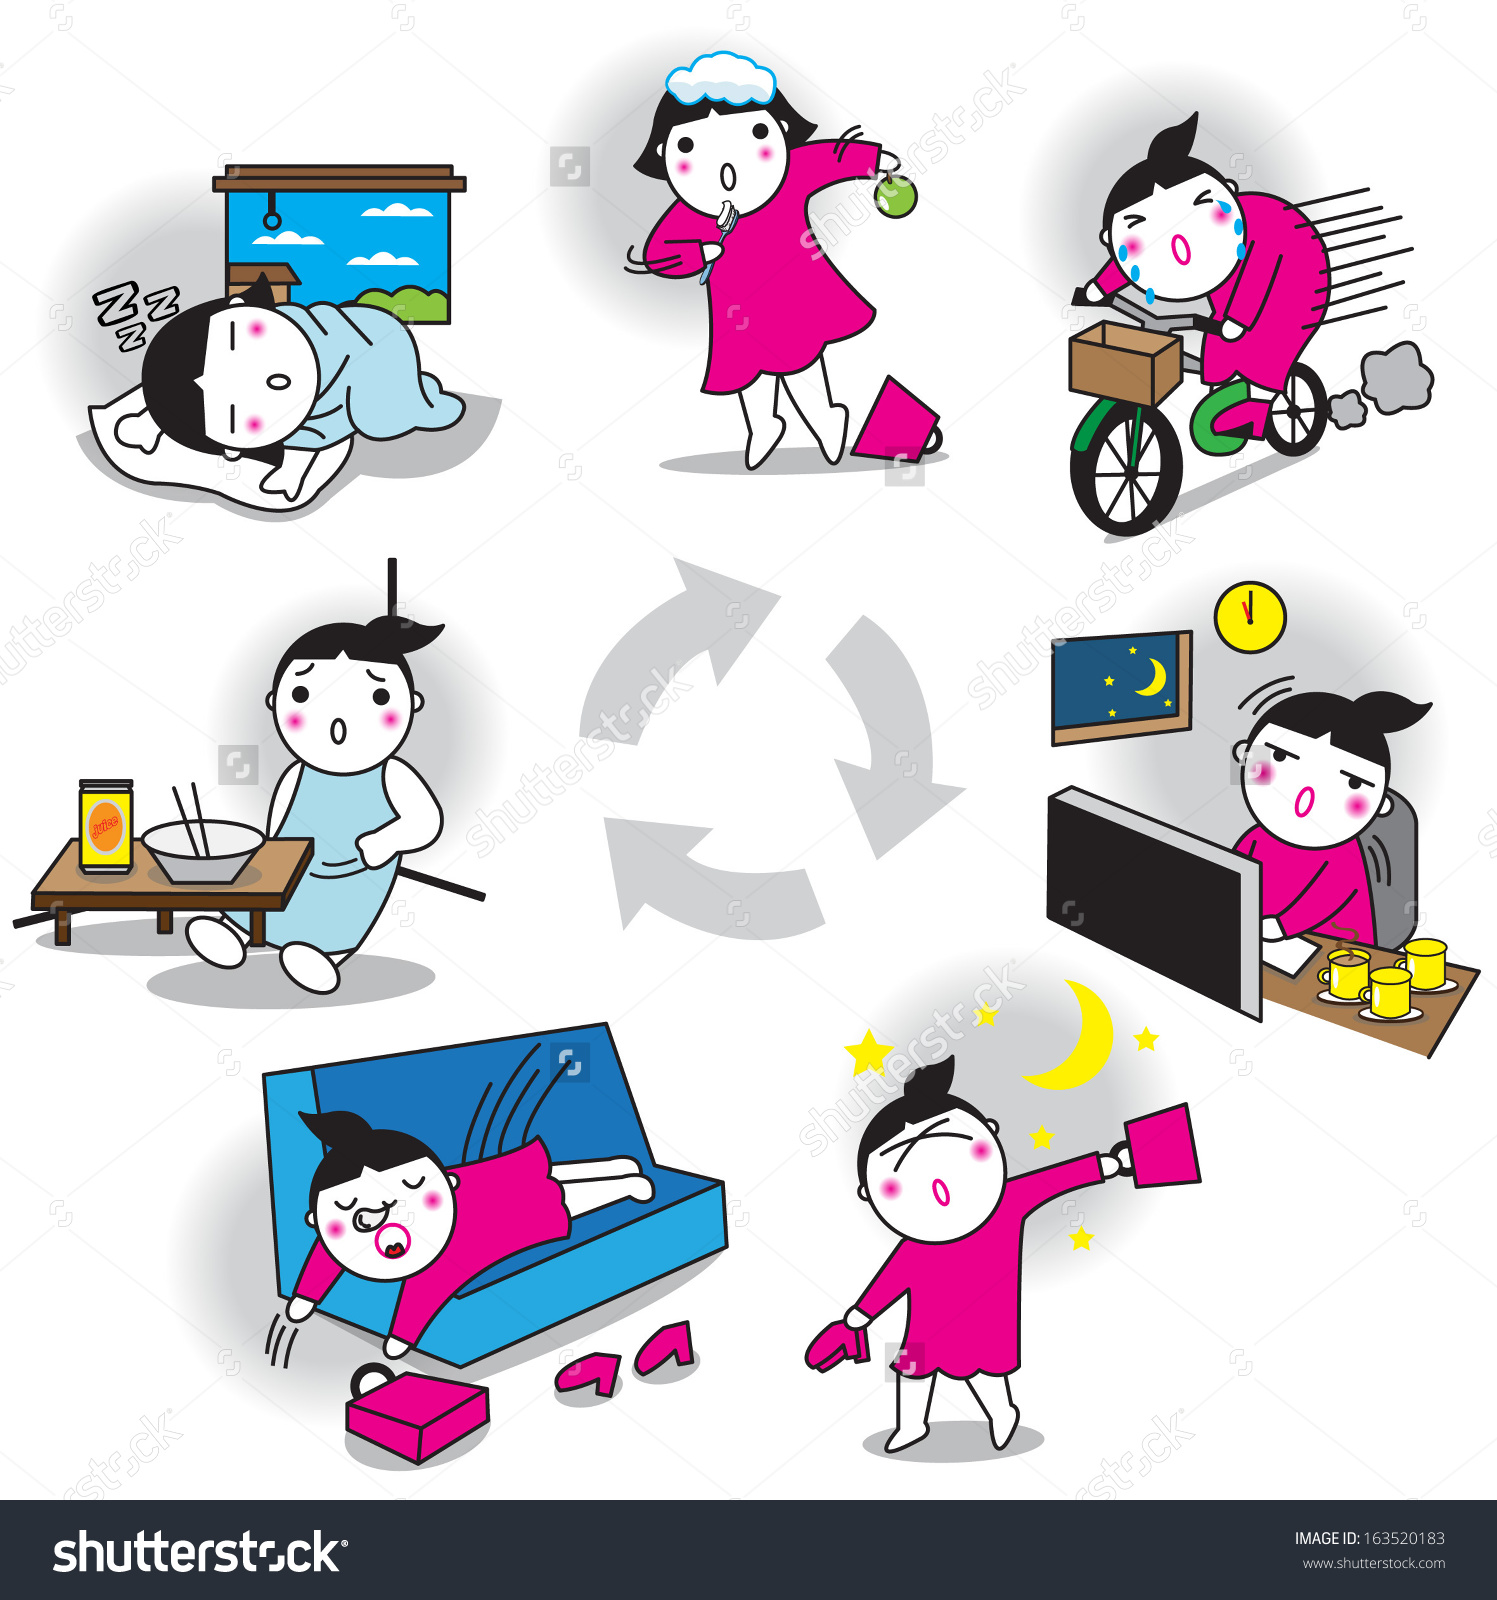 Activities clipart daily. Life free collection download